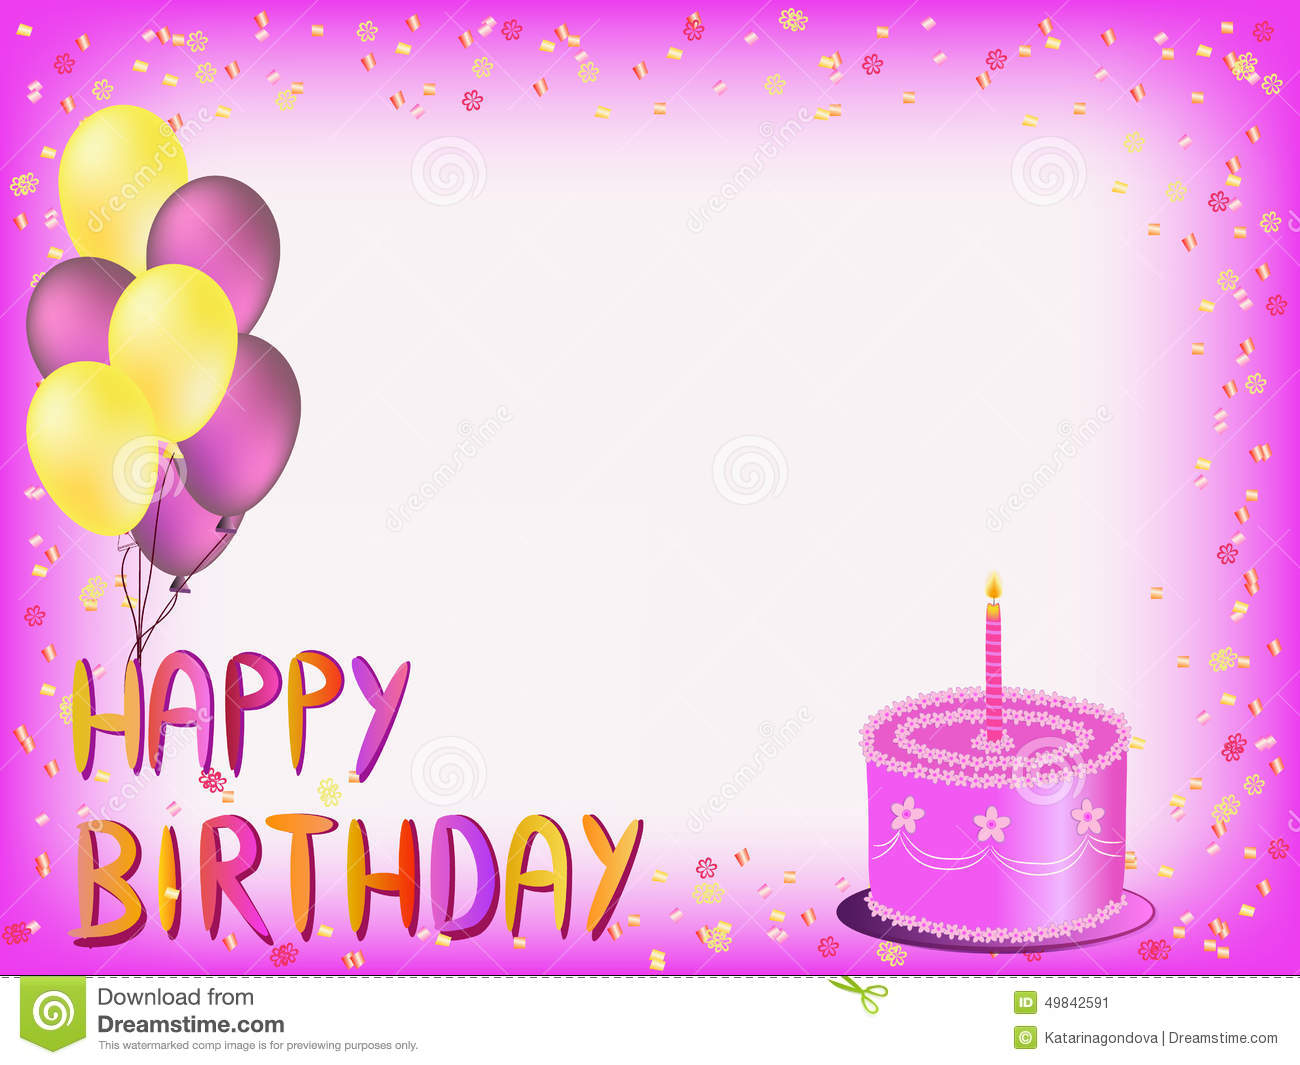 beautiful birthday greeting cards images ; birthday-greeting-card-amazing-design-collection-card-for-your-birthday-card-ideas-good-happy-birthday-wishes-all-inspiration-birthday